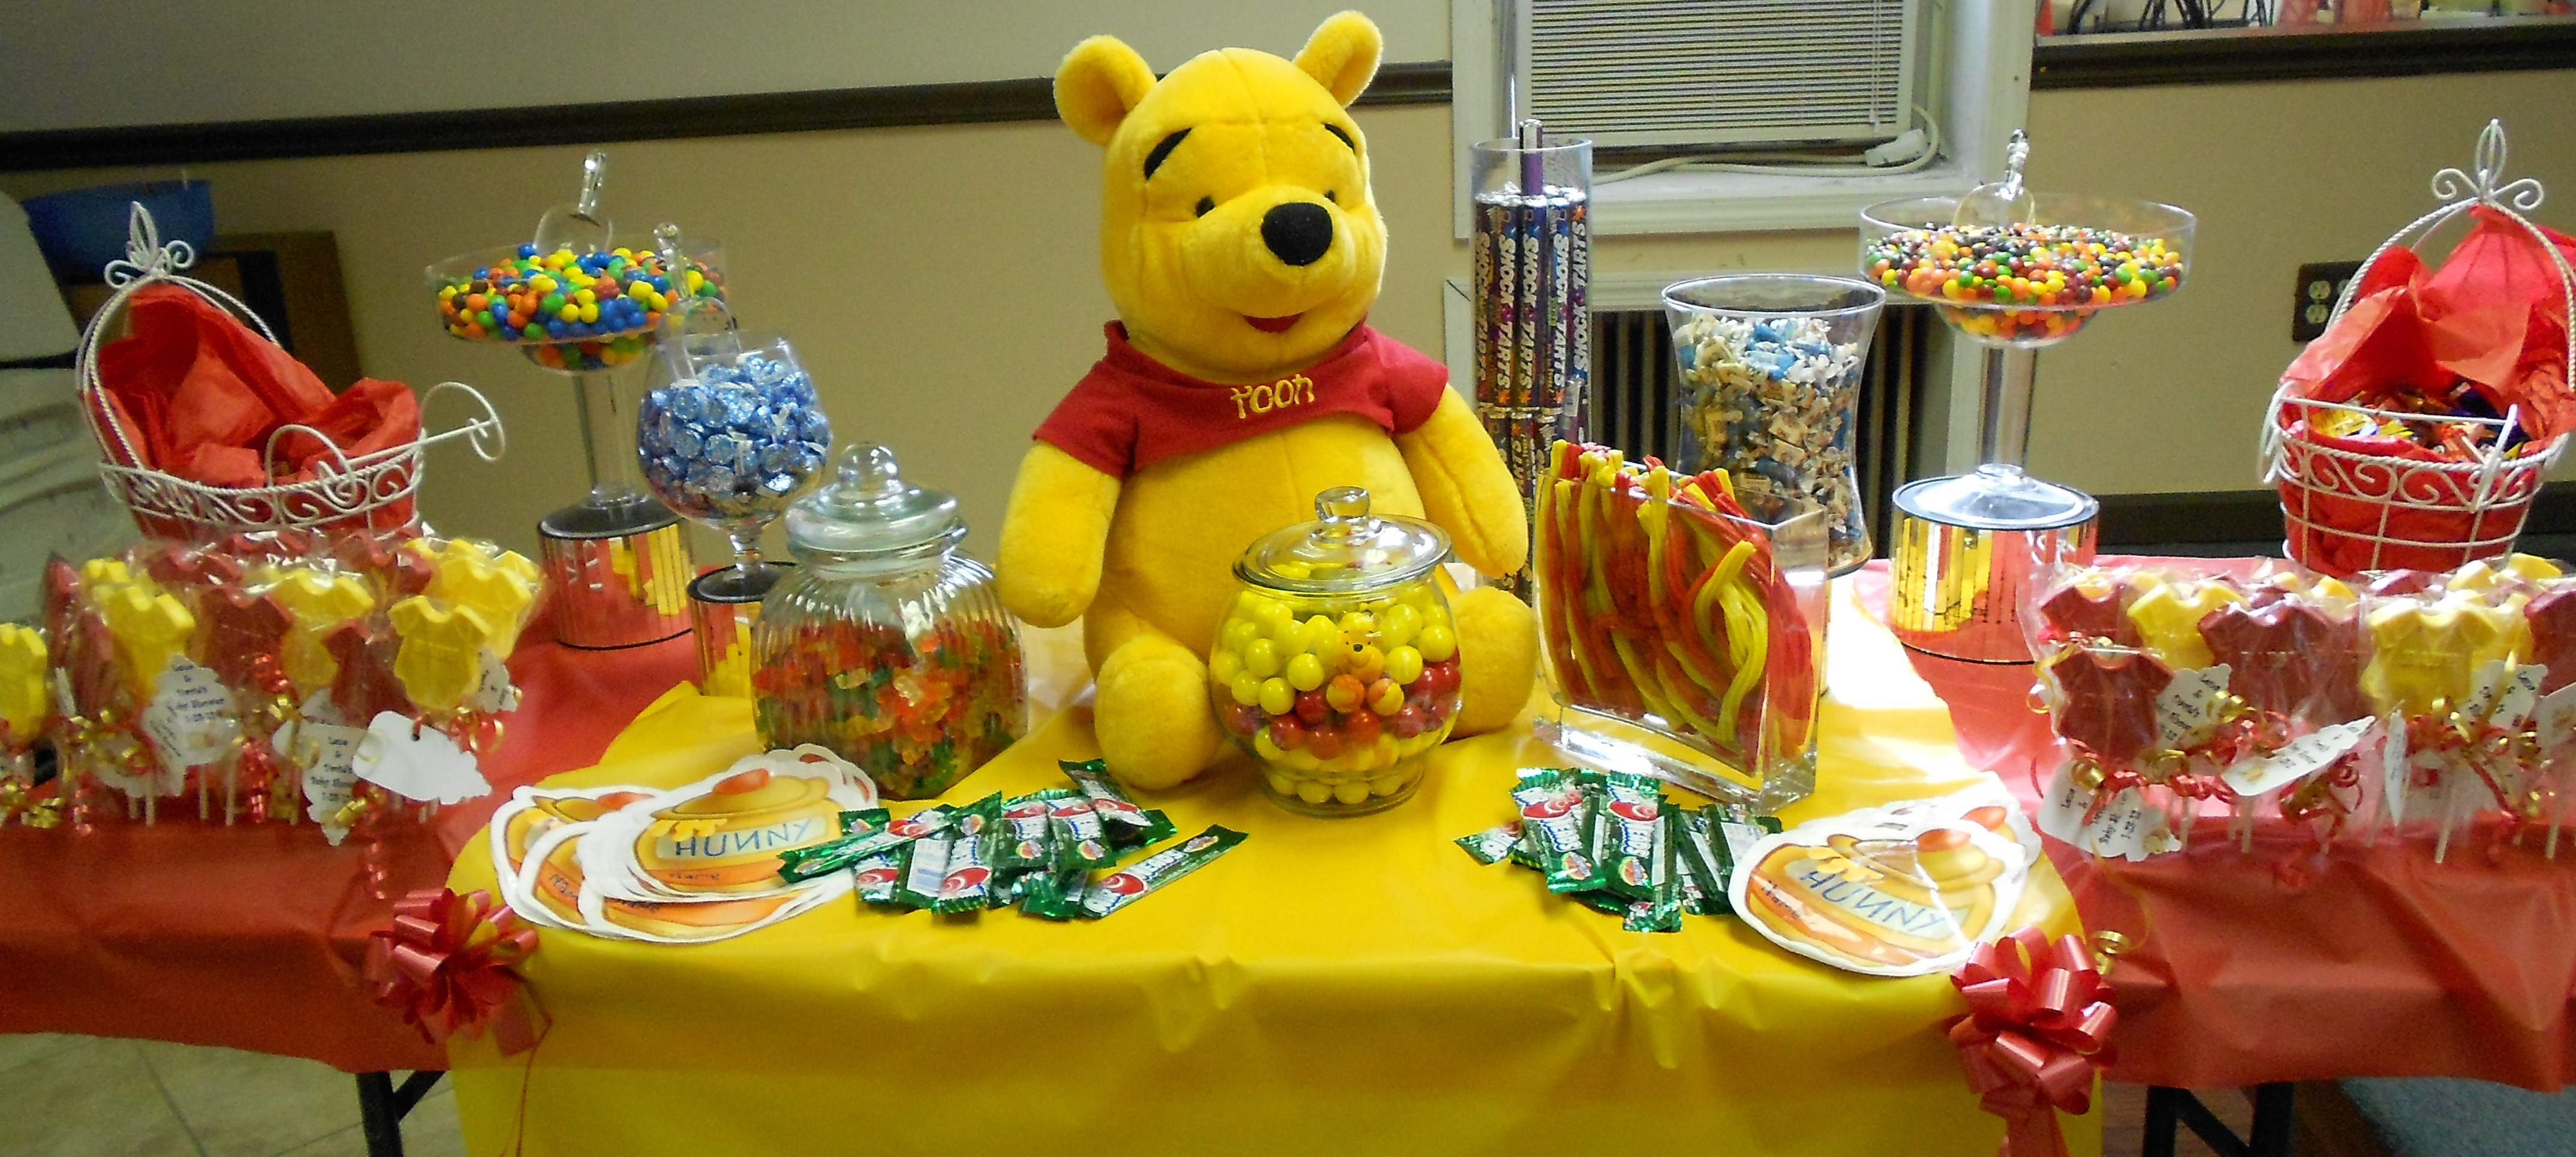 Create Your Own Winnie the Pooh Baby Shower With These Ideas